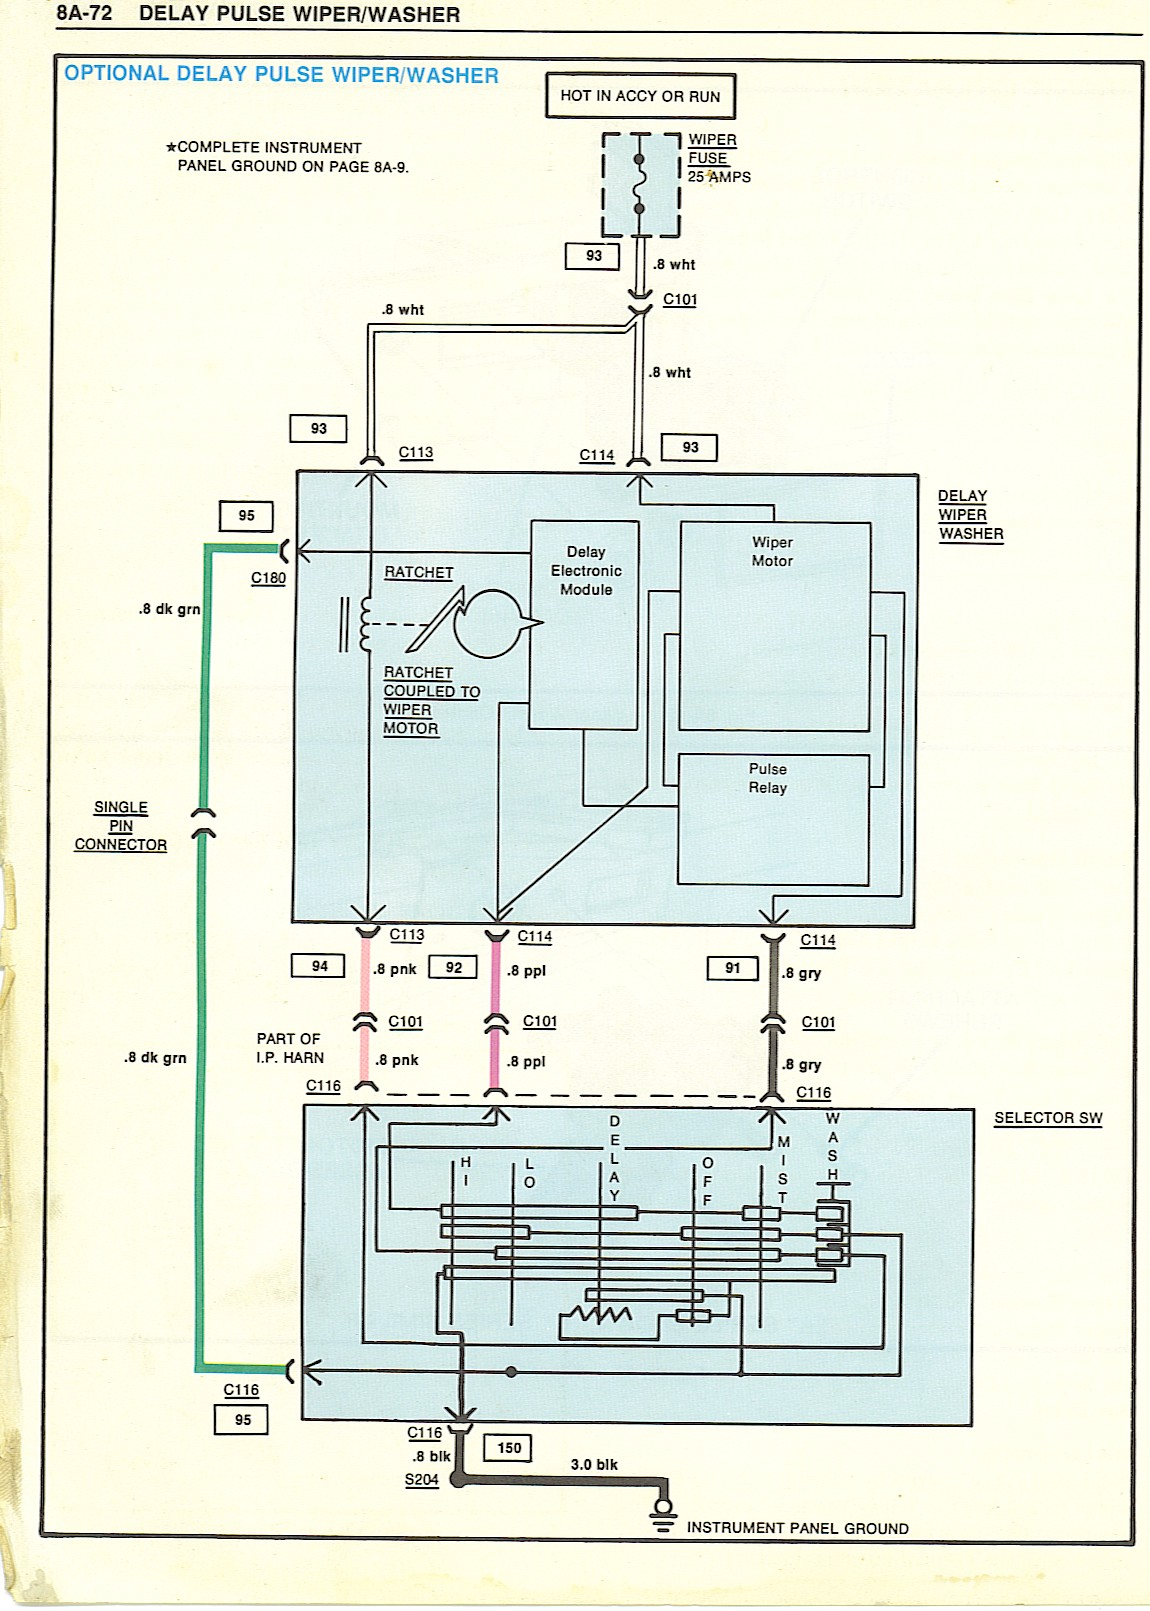 1987 El Camino Wiper Wiring Diagram Image Details Chrysler Pacifica Windshield